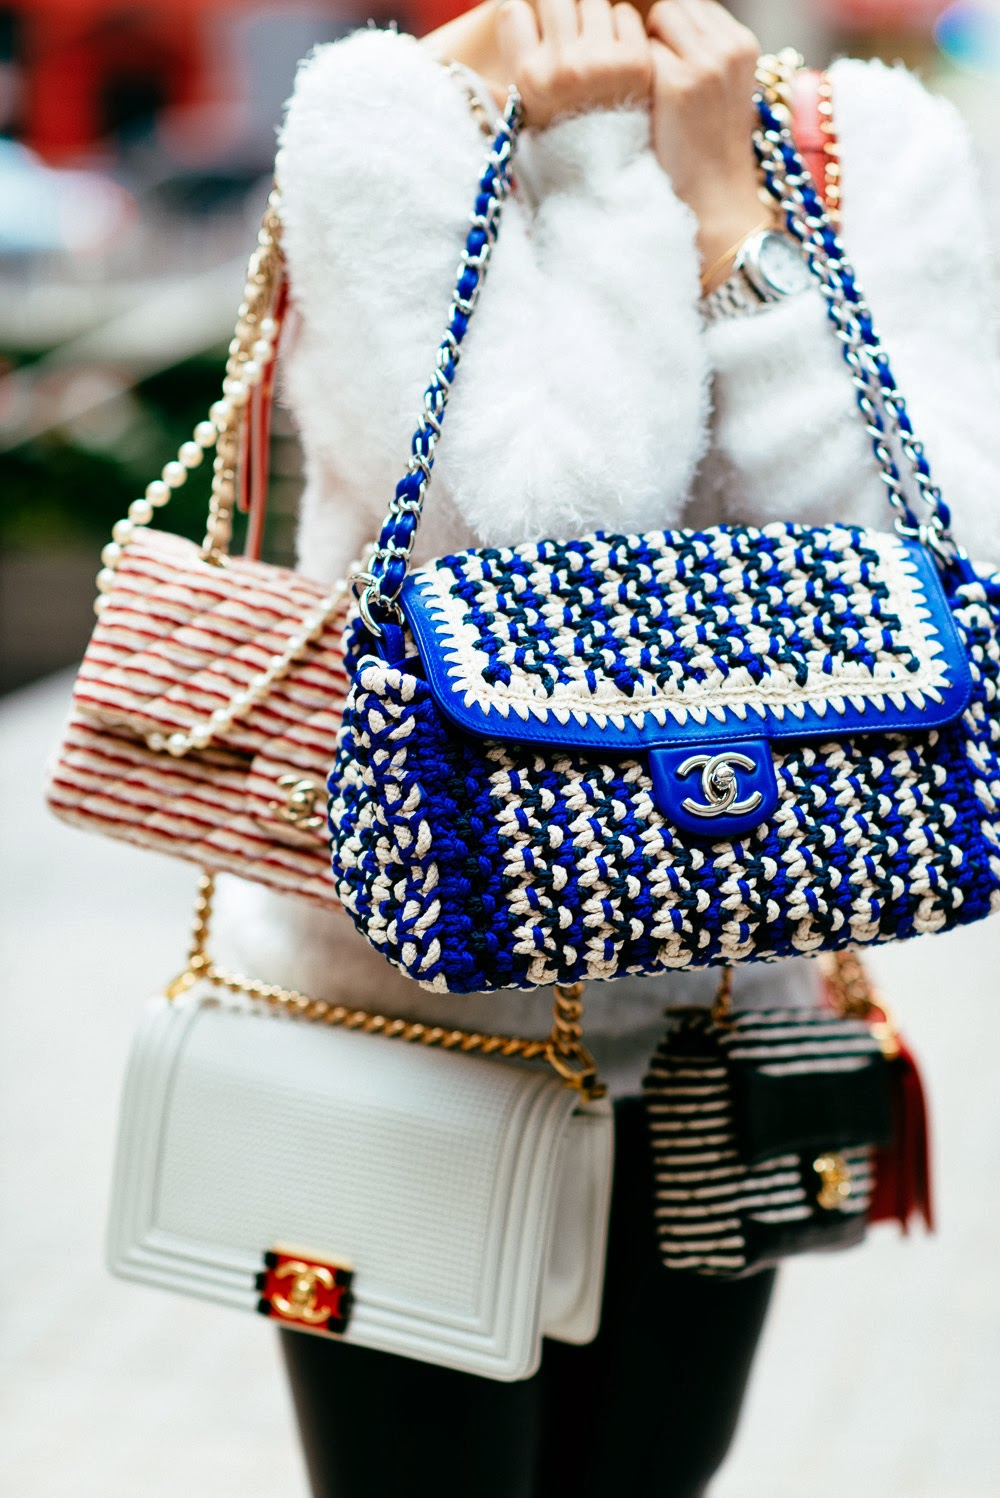 coccos style file chanel cruise 2014 handbags